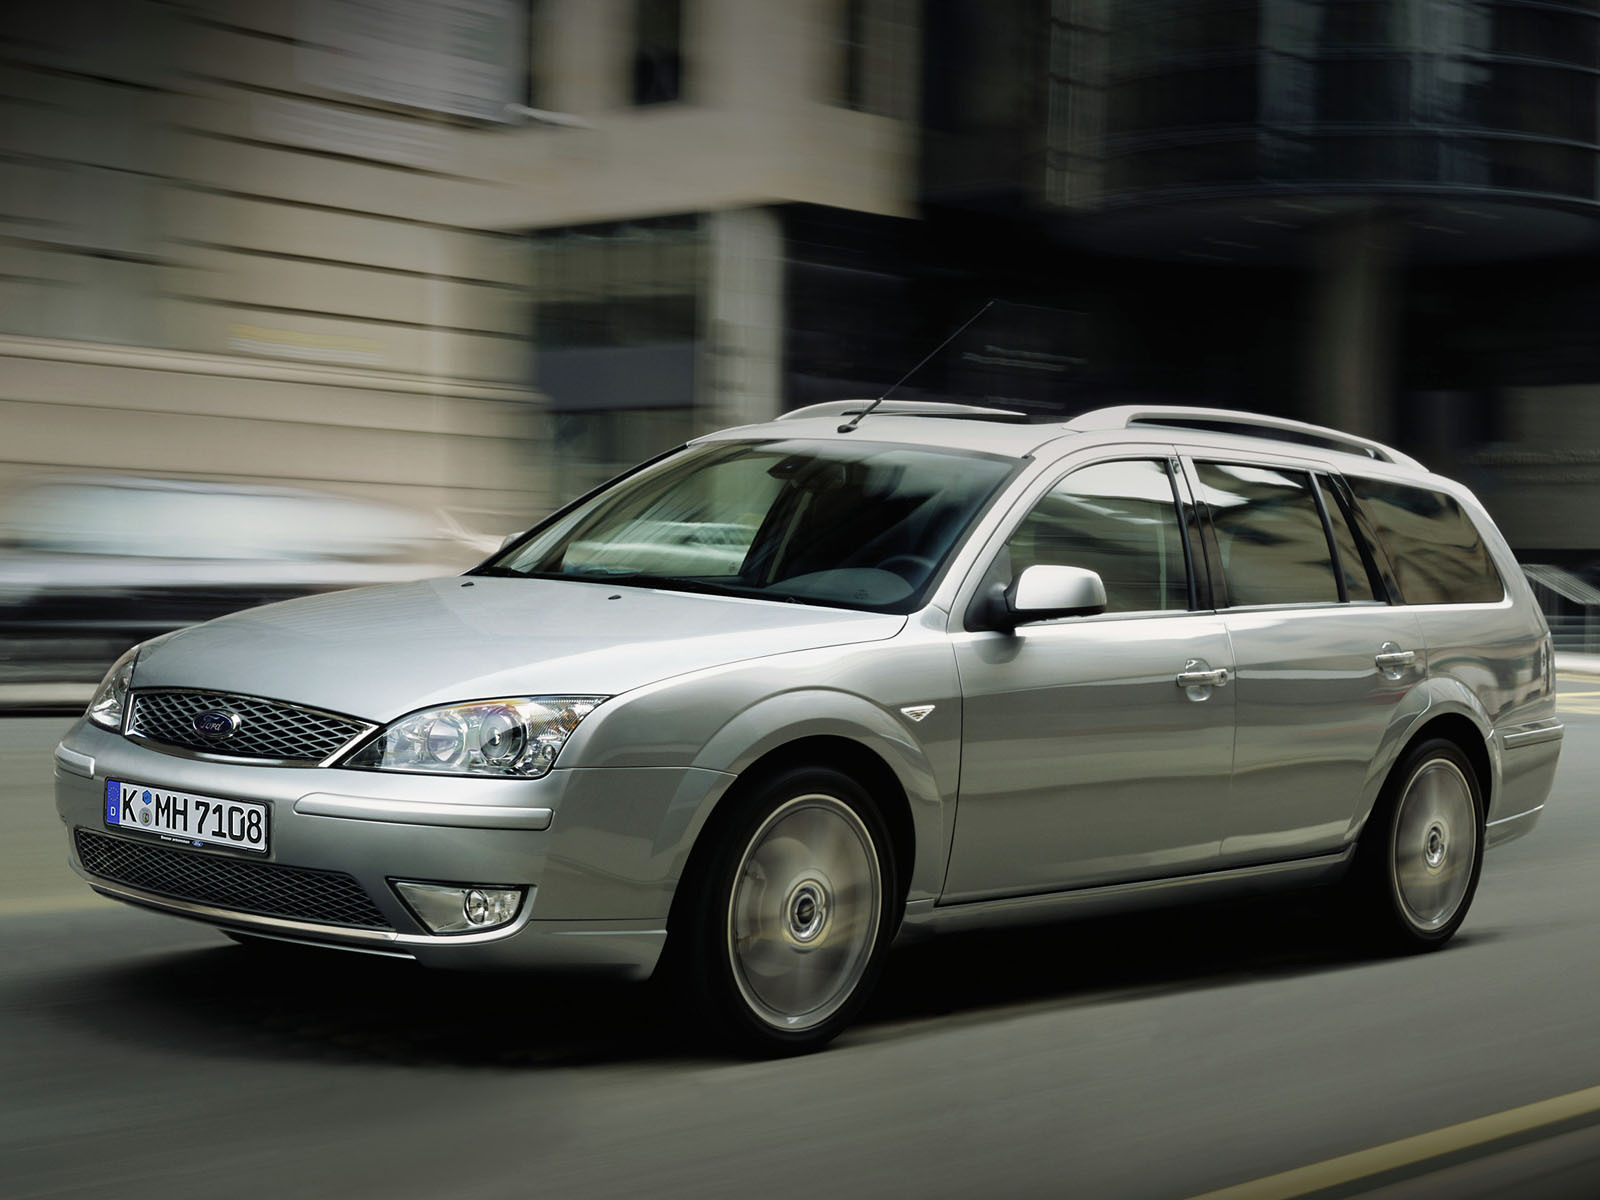 2005 Ford Mondeo #20